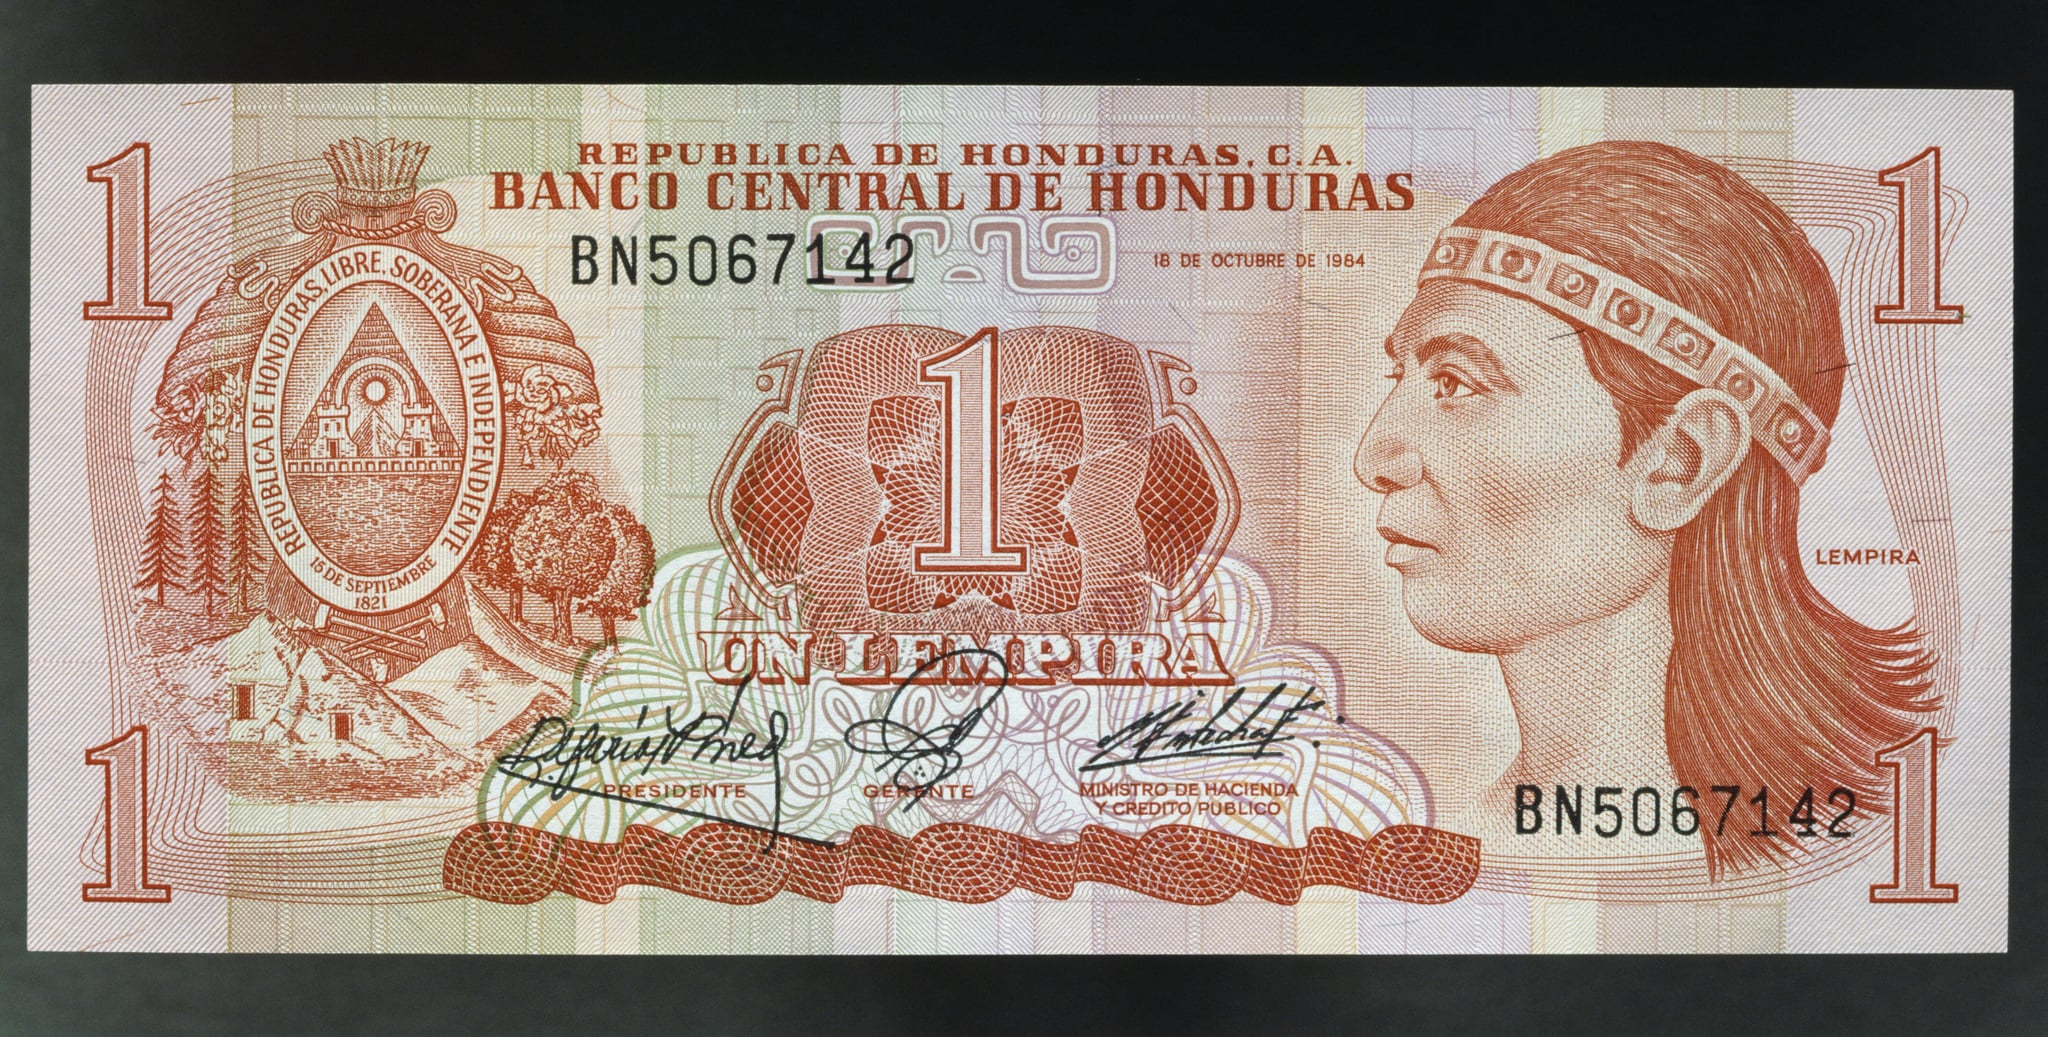 HONDURAS - JUNE 15: 1 lempira banknote, 1984, obverse, effigy of Lempira (died 1537). Honduras, 20th century. (Photo by DeAgostini/Getty Images)